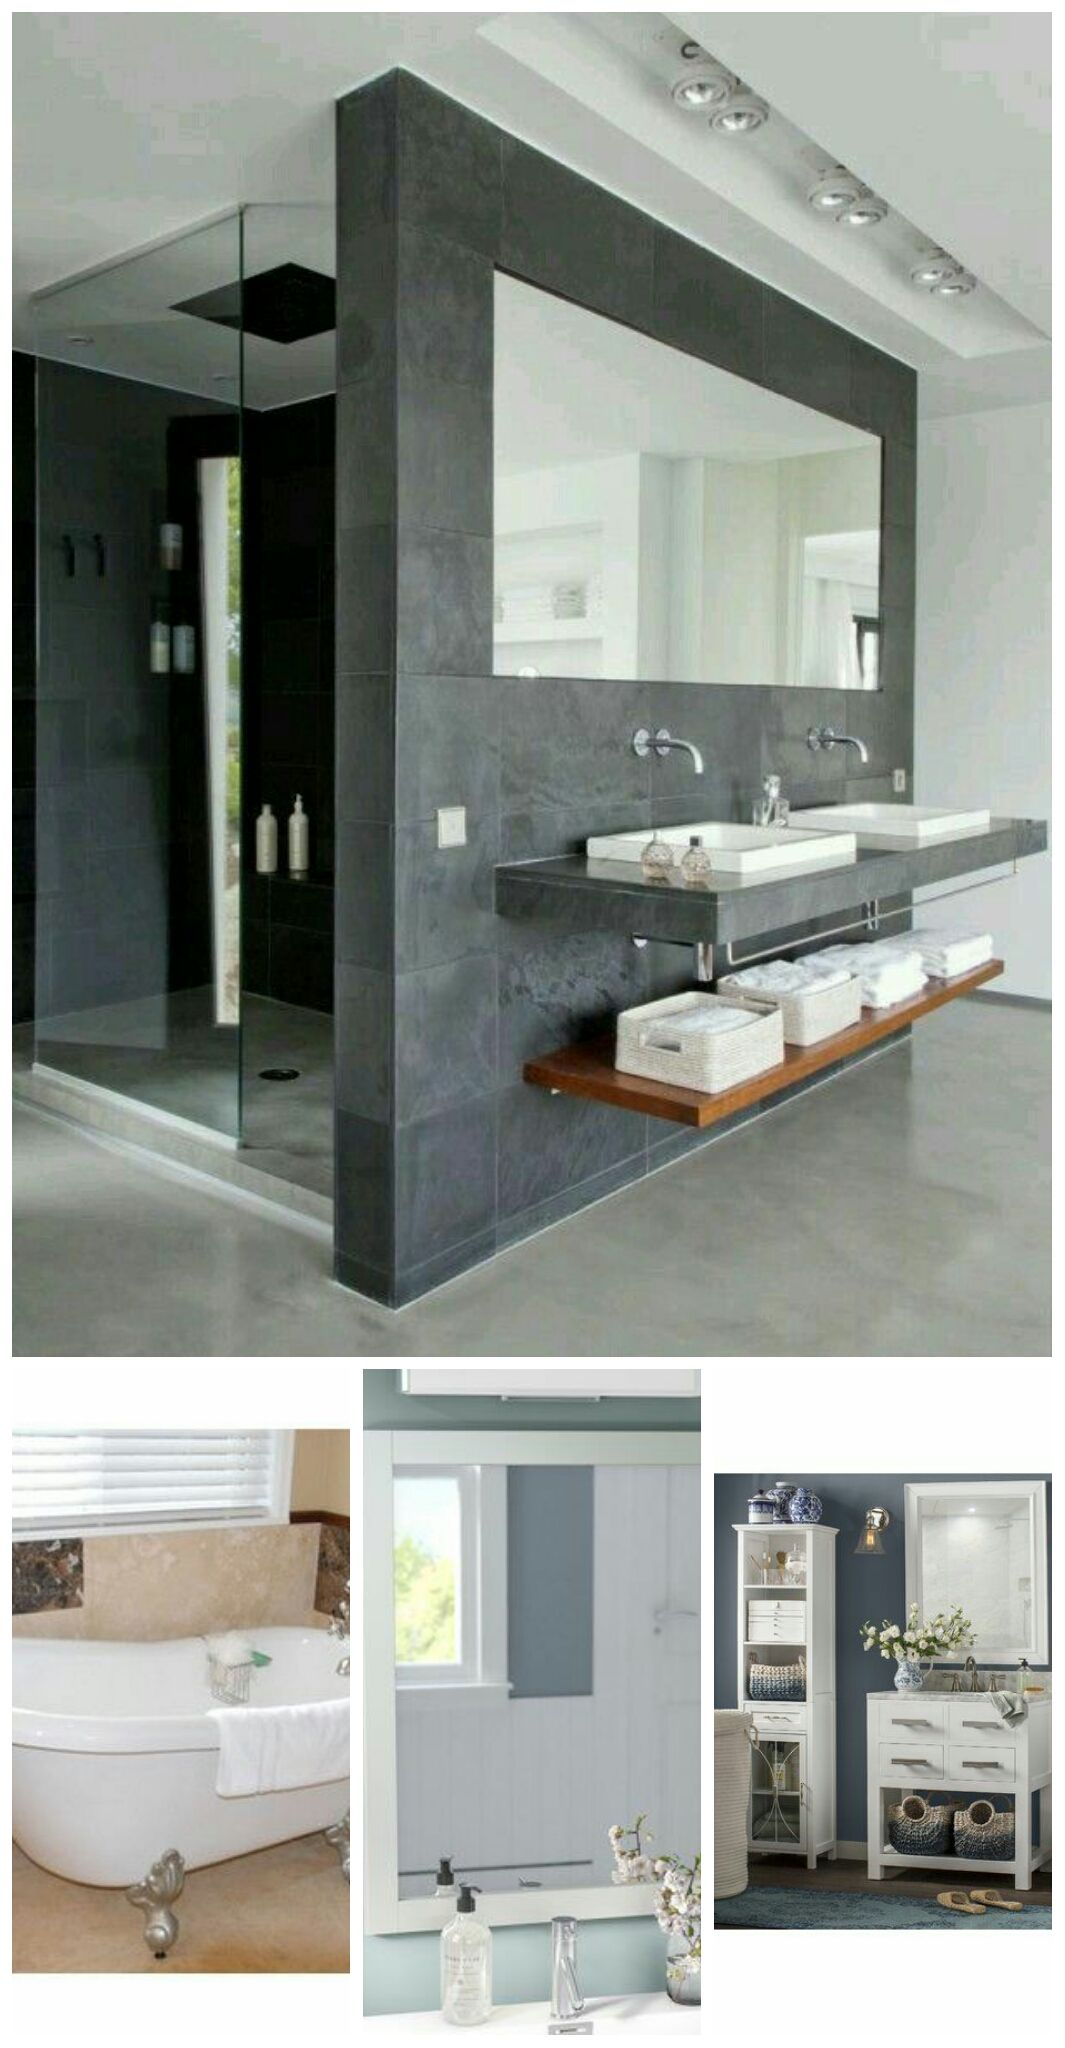 Tiny Restroom Decorating Concepts Is Categorically Essential For Your Residence Whether You Selec Top Bathroom Design Bathroom Design Bathroom Interior Design